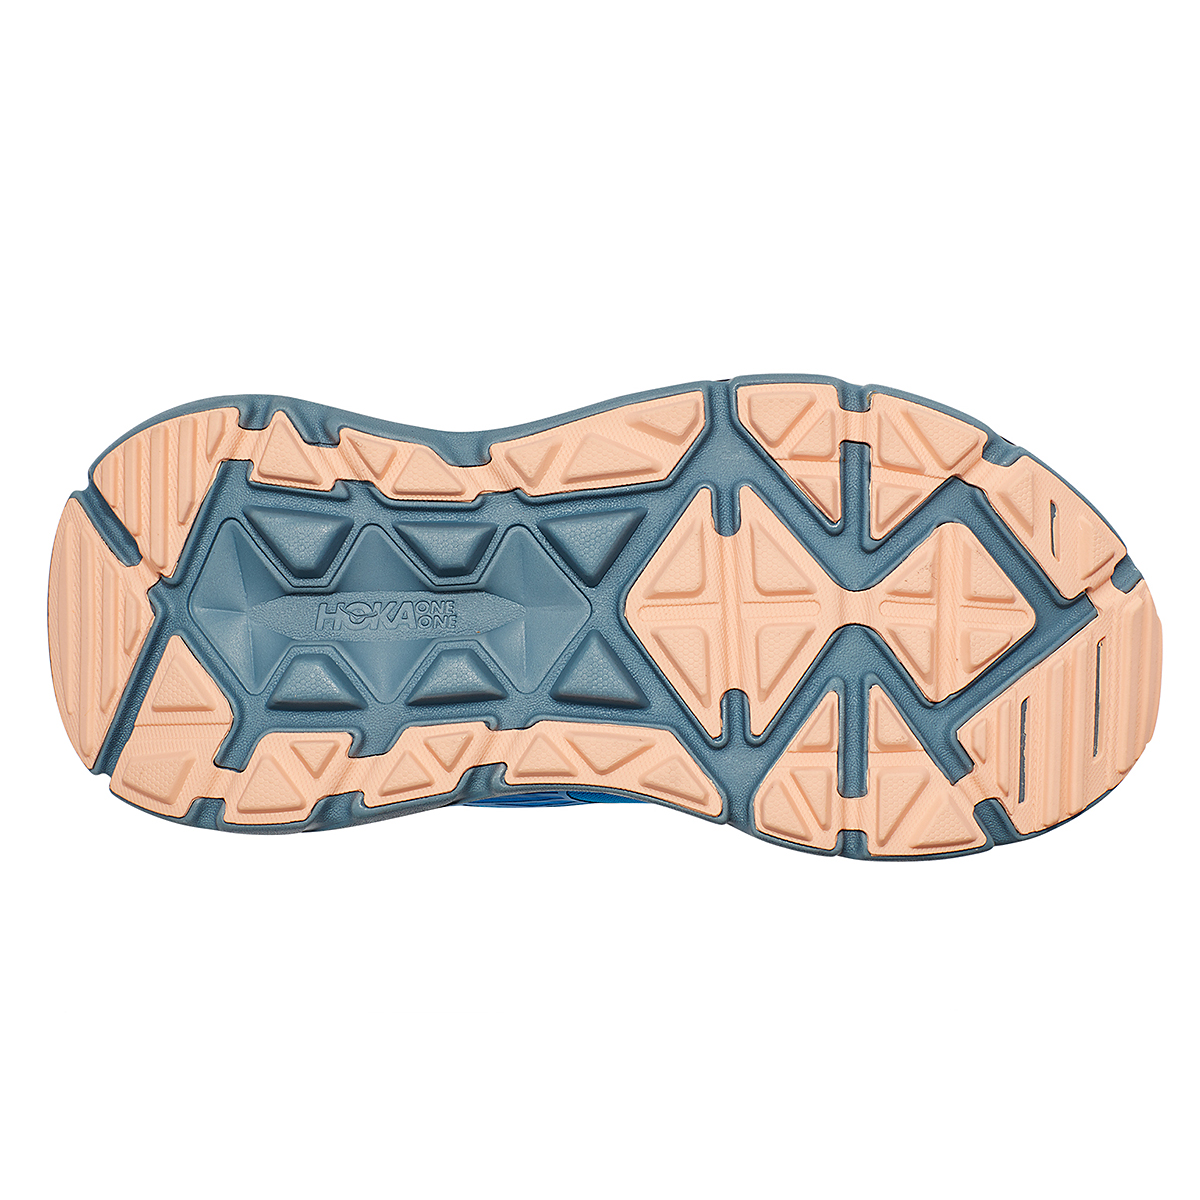 Women's Hoka One One Stinson Atr 6 Trail Running Shoe - Color: Indigo Bunting/Bleached Apricot - Size: 5 - Width: Regular, Indigo Bunting/Bleached Apricot, large, image 3